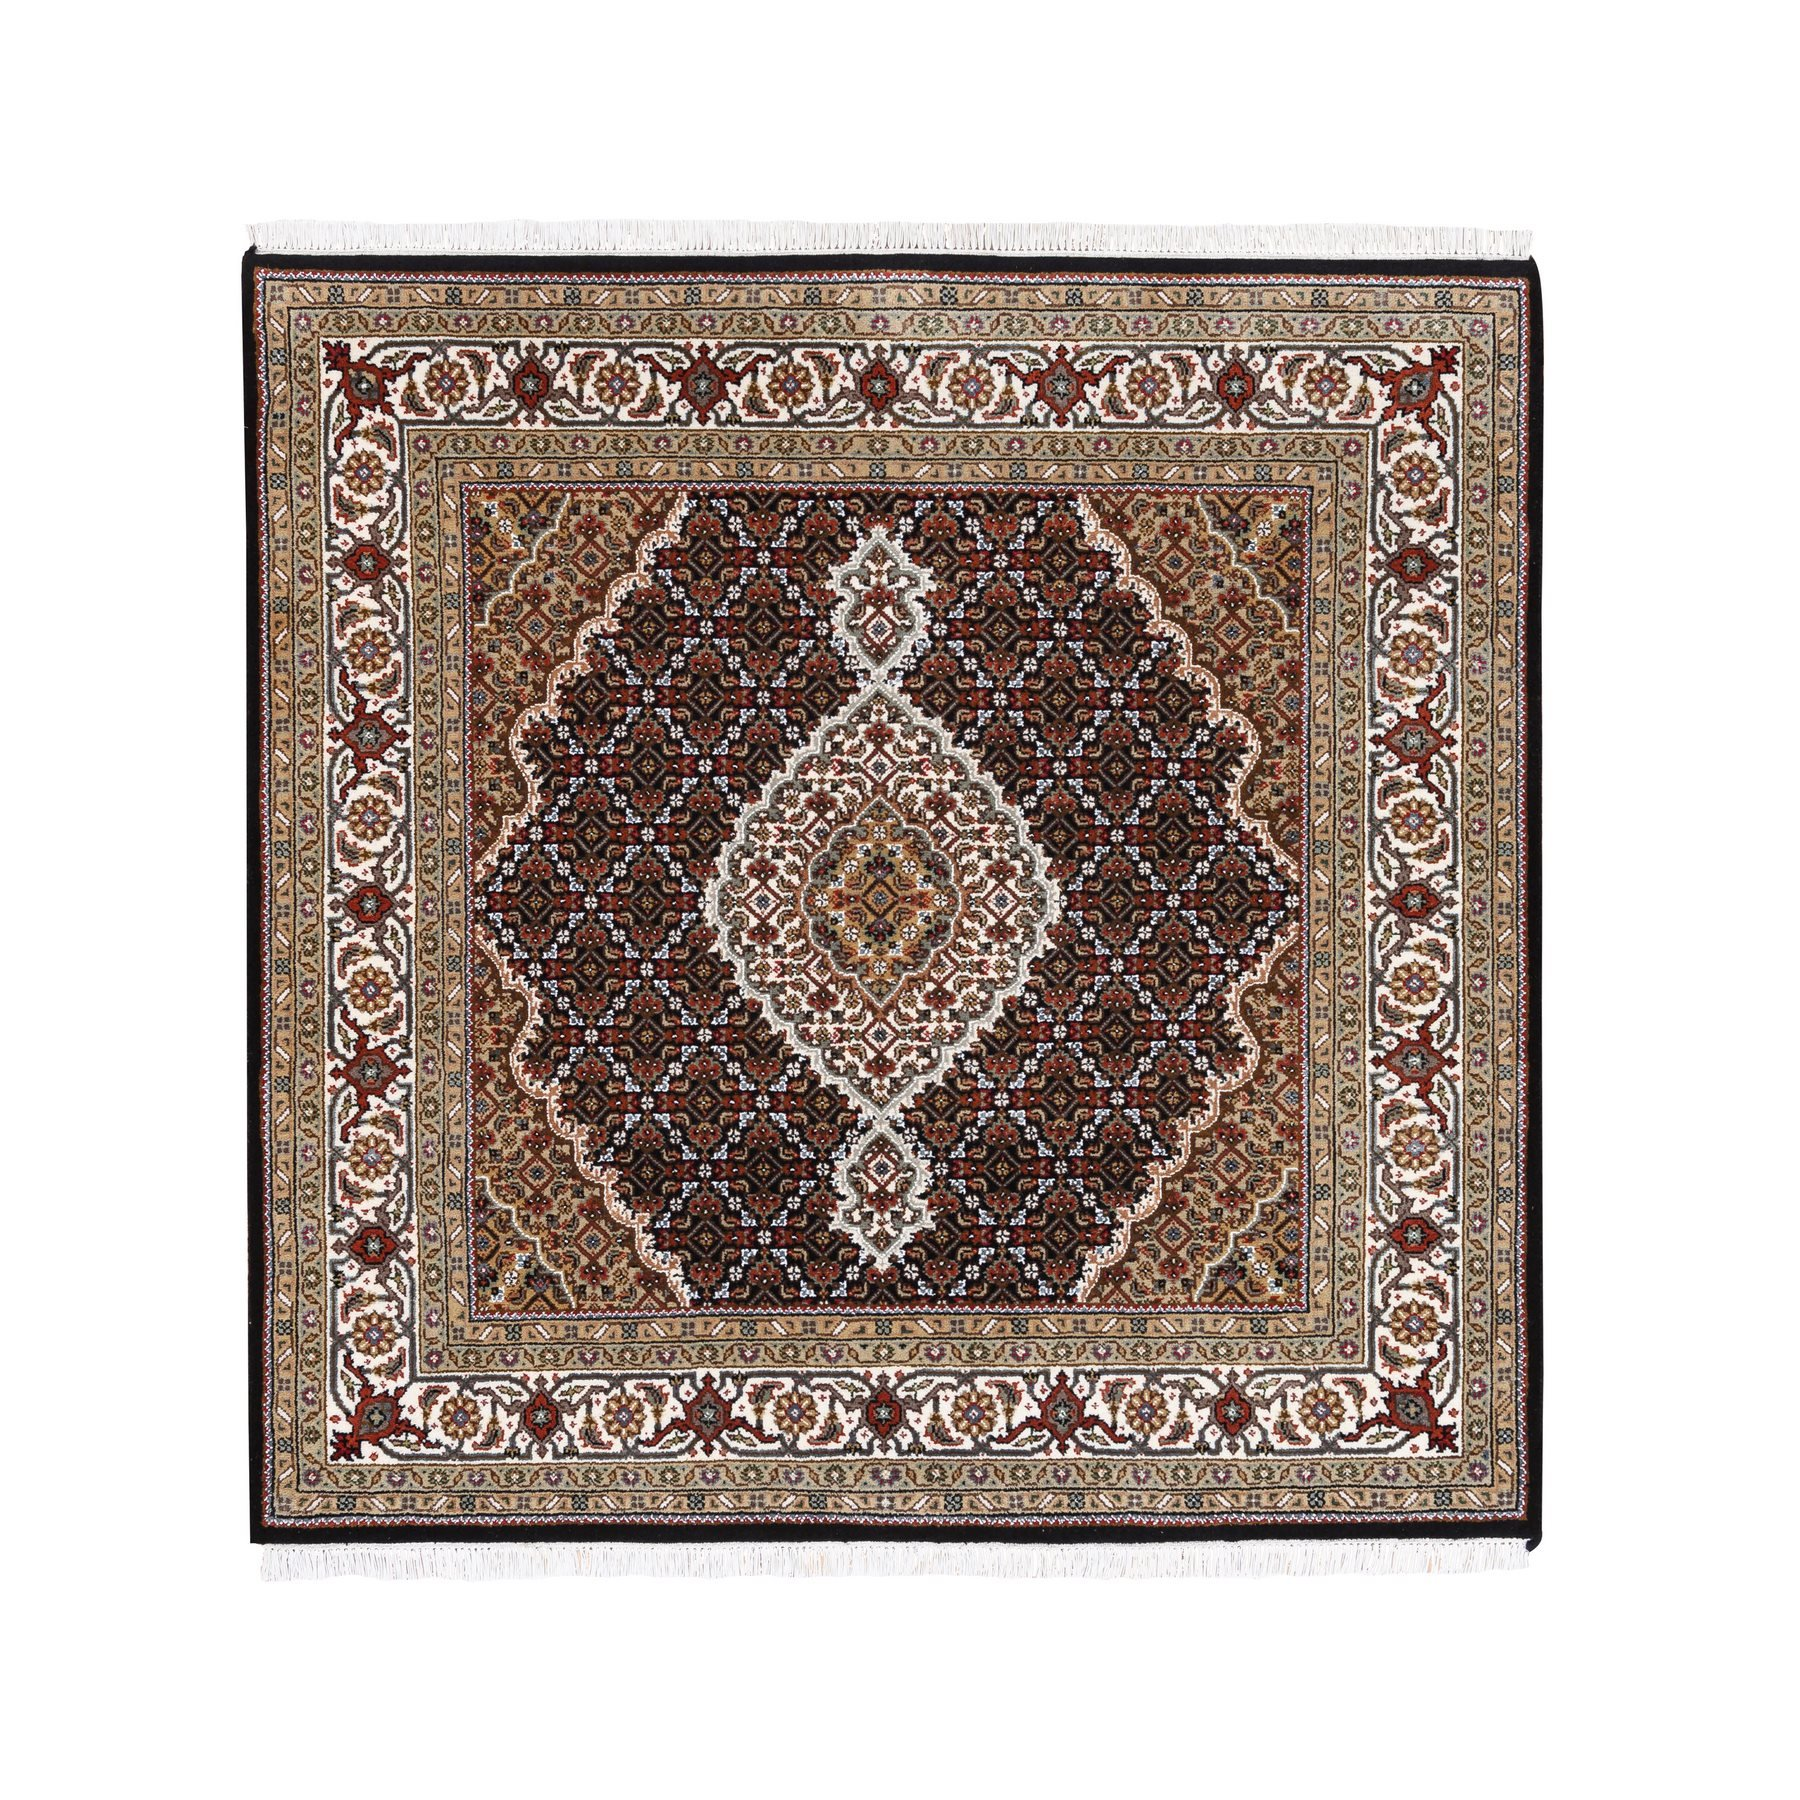 Pirniakan Collection Hand Knotted Black Rug No: 1125086